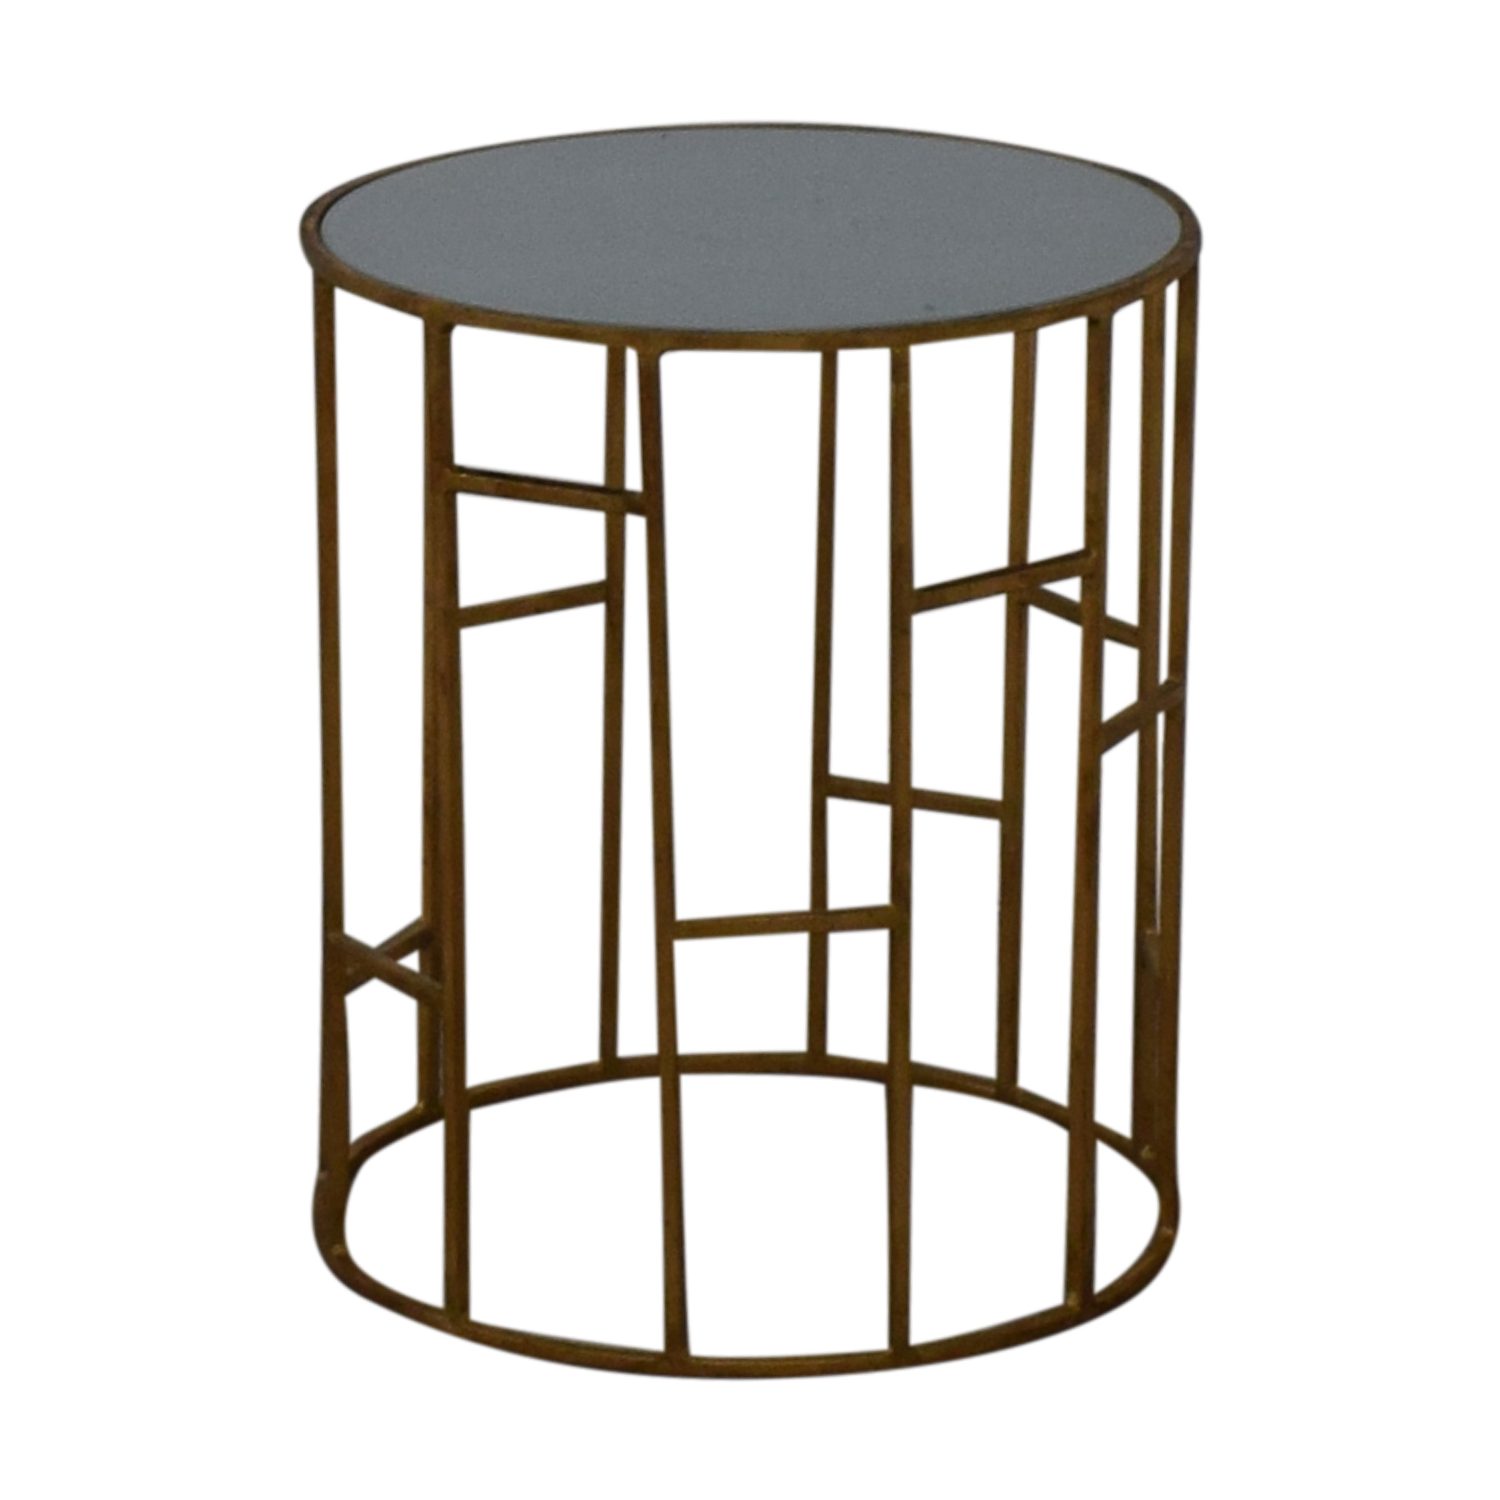 Safavieh Safavieh Doreen Gold & Glass Accent Table gold